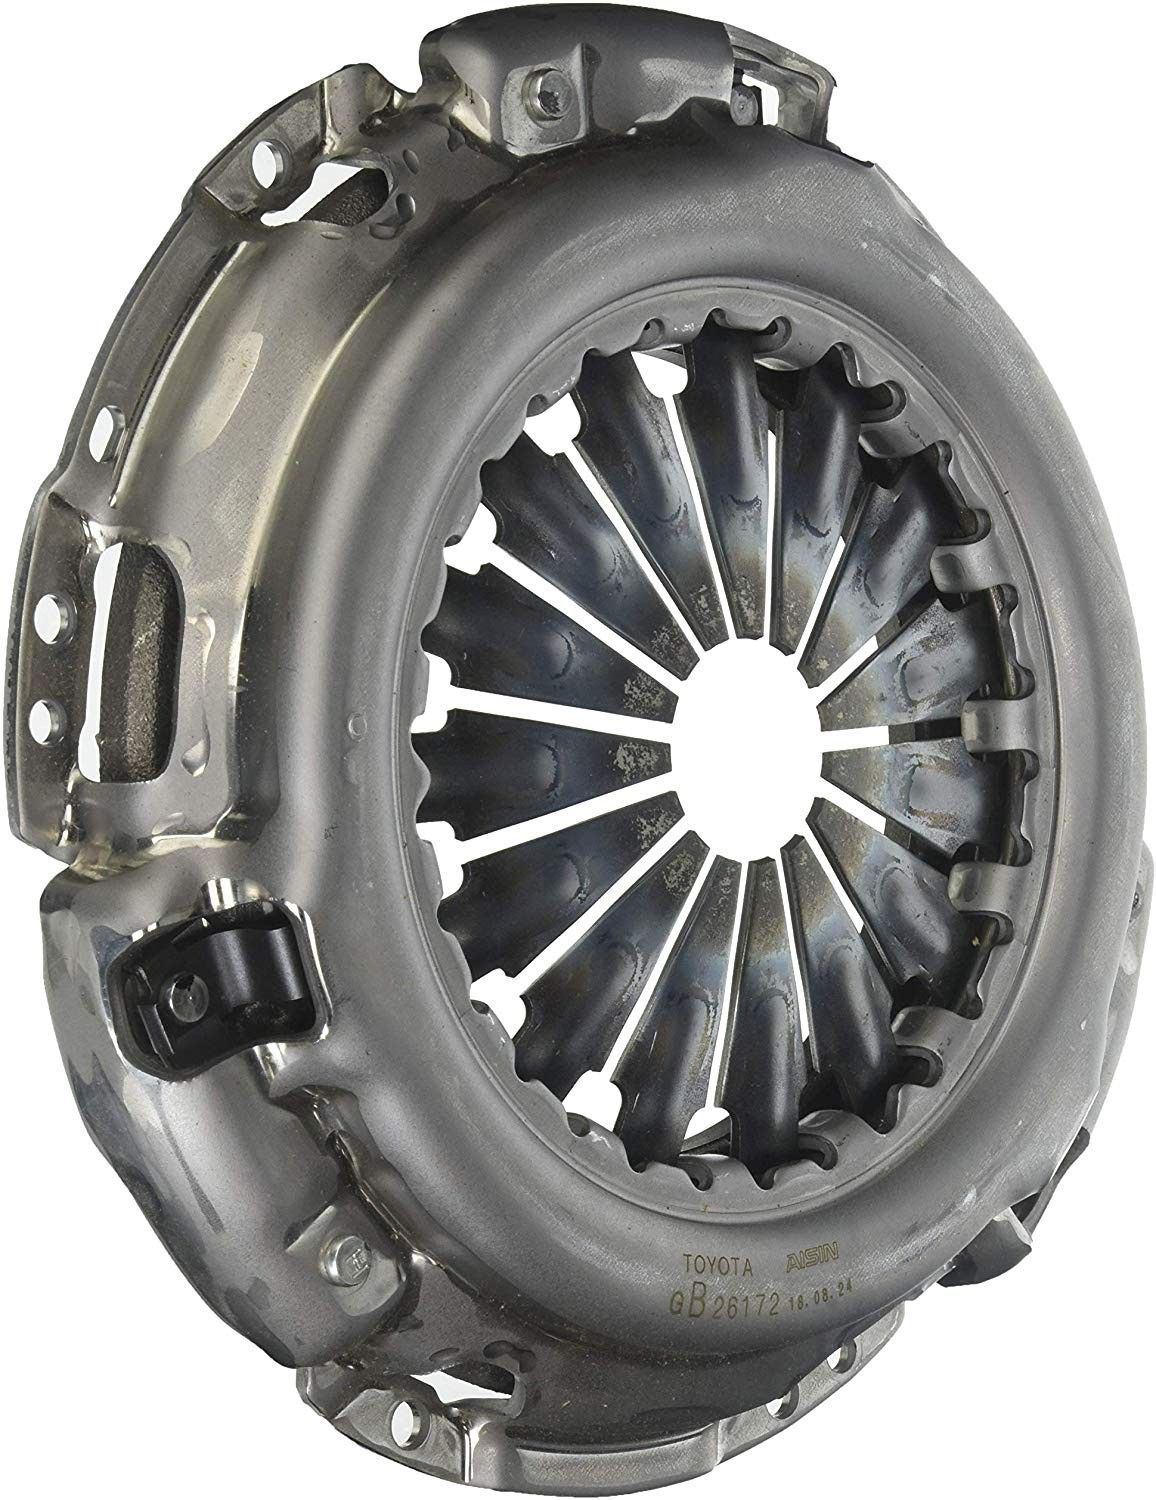 Luk Clutch Pressure Plate For Ashok Leyland Iveco 909 Cargo Model 3.25 mm Thickness 310 - 1310292100